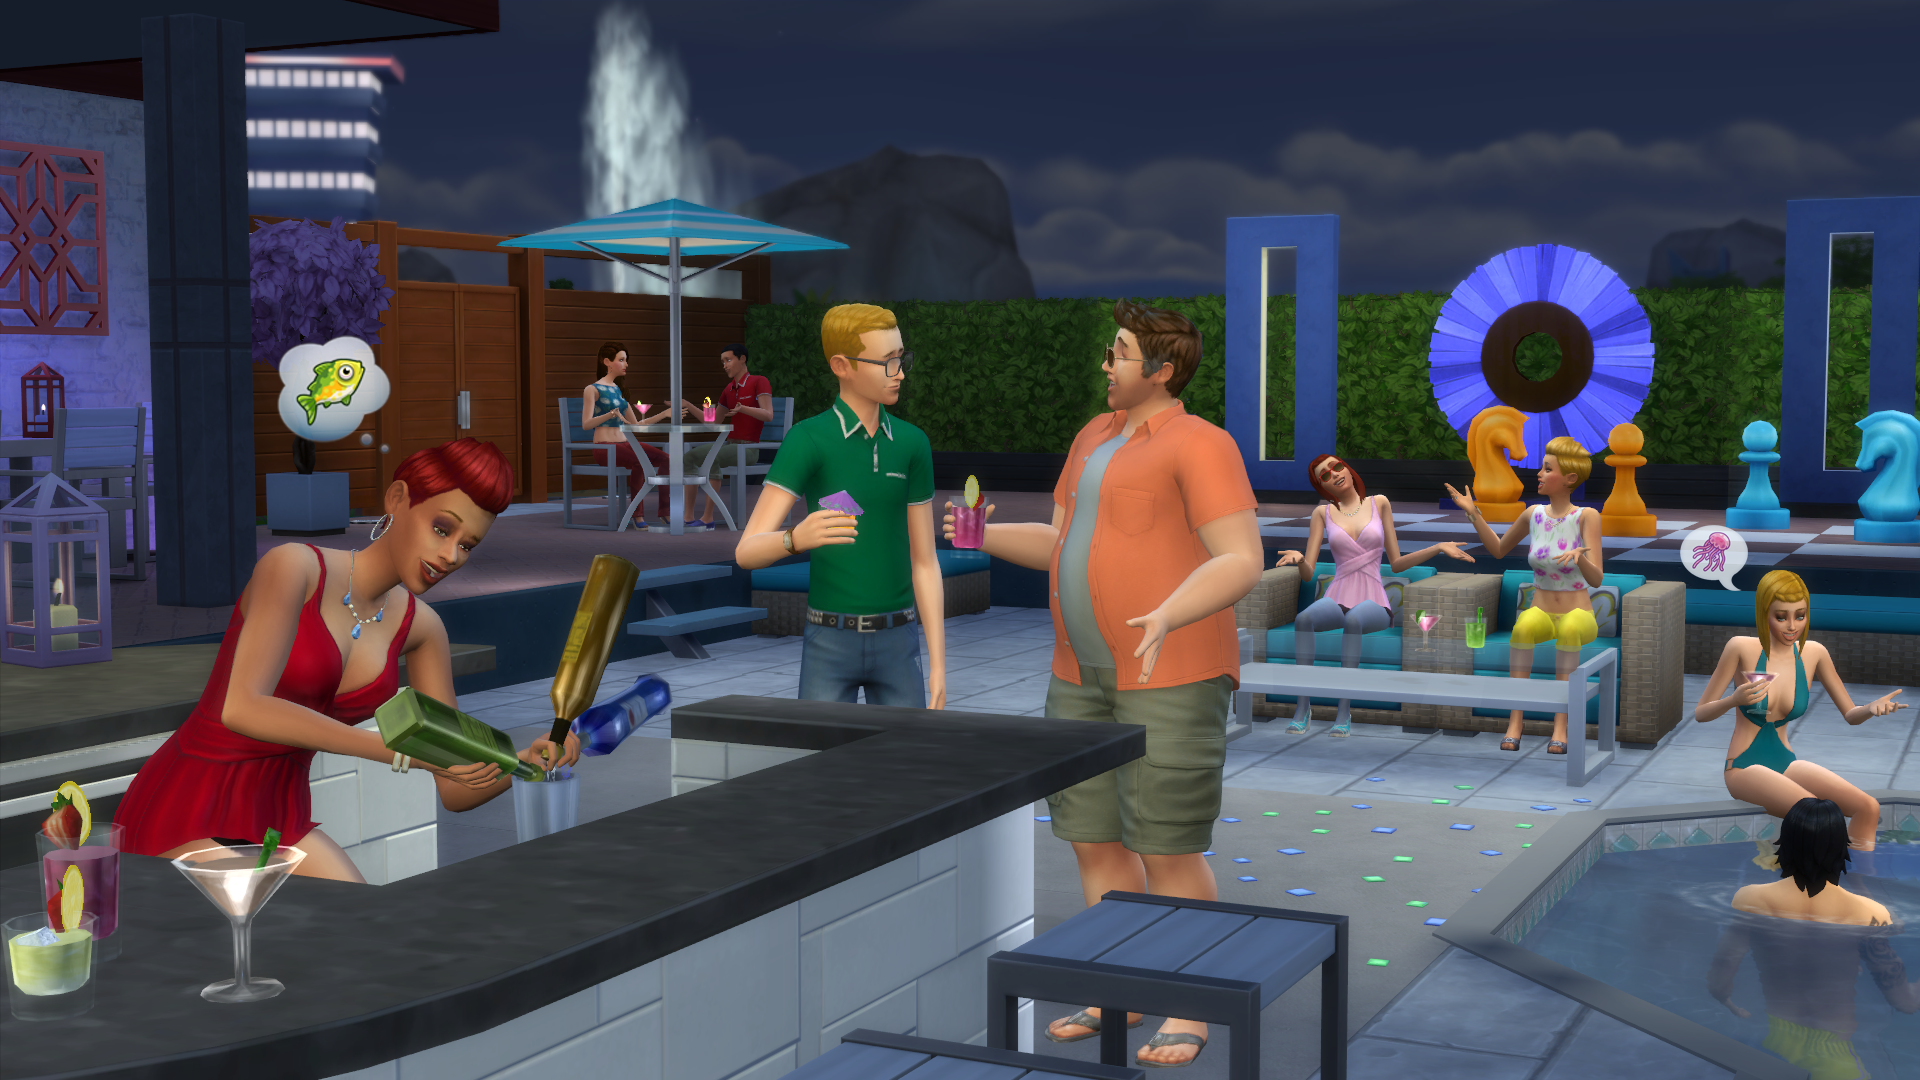 A beginner's guide to The Sims 4 on consoles - GodisaGeek com